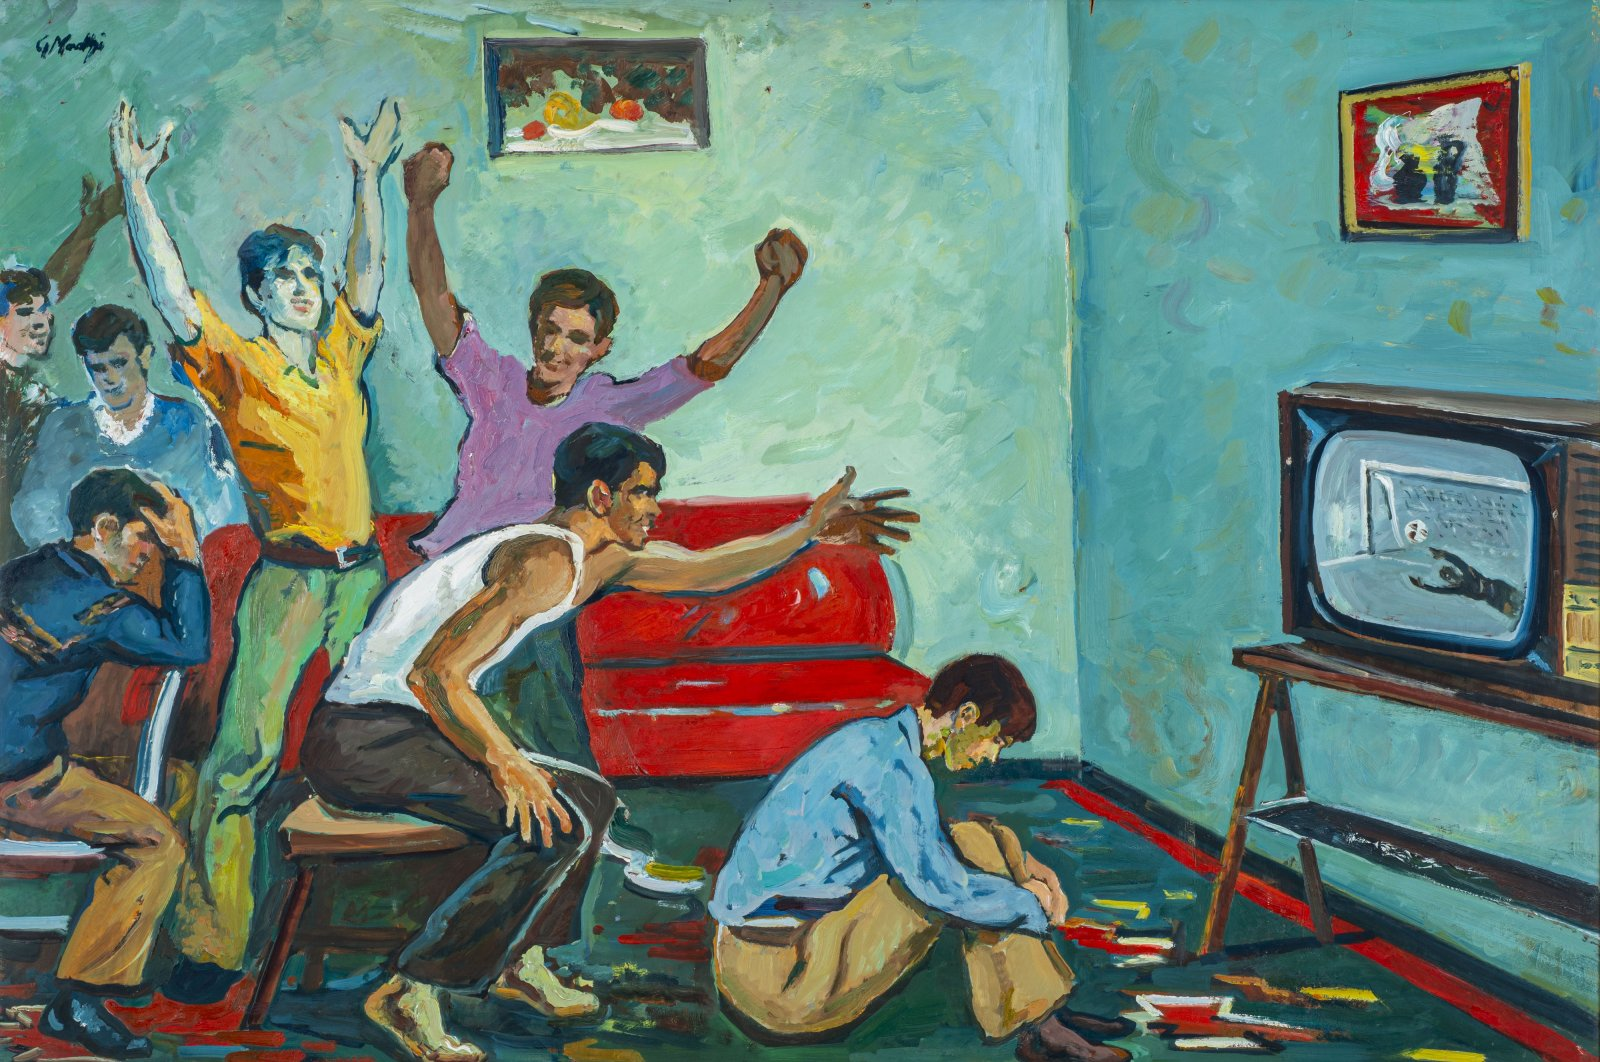 """Guri Madhi, """"When We Don't Go to the Stadium"""", 1986, oil on wood, 86 by 123 centimeters. (Courtesy of Pera Museum)"""